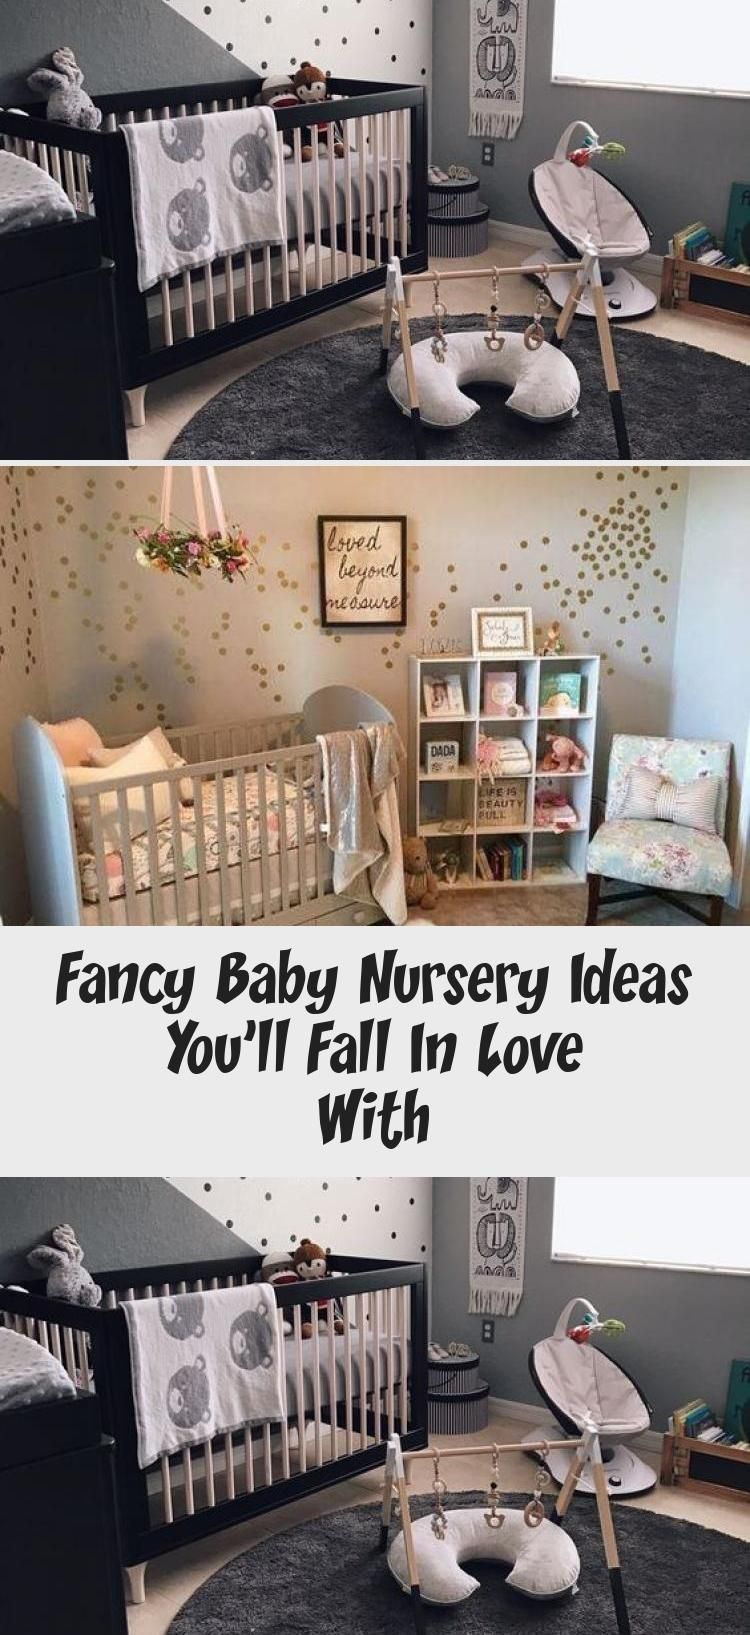 Fancy Baby Nursery Ideas You'll Fall In Love With - BABY ...